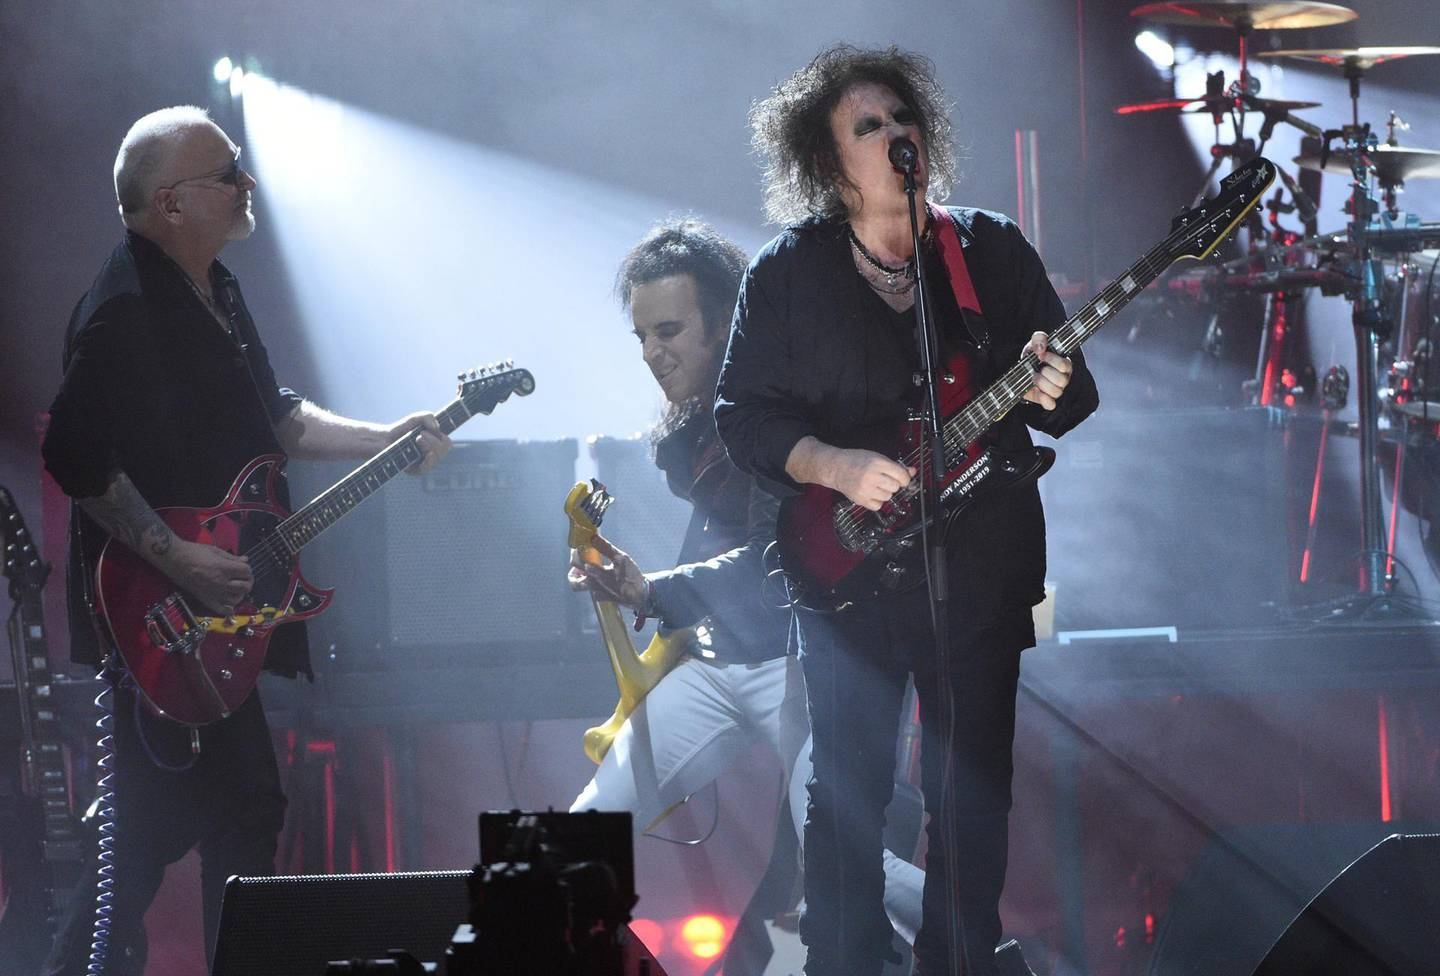 Inductees Reeves Gabrels, from left, Simon Gallup and Robert Smith, of The Cure, perform at the Rock & Roll Hall of Fame induction ceremony at the Barclays Center on Friday, March 29, 2019, in New York. (Photo by Evan Agostini/Invision/AP)